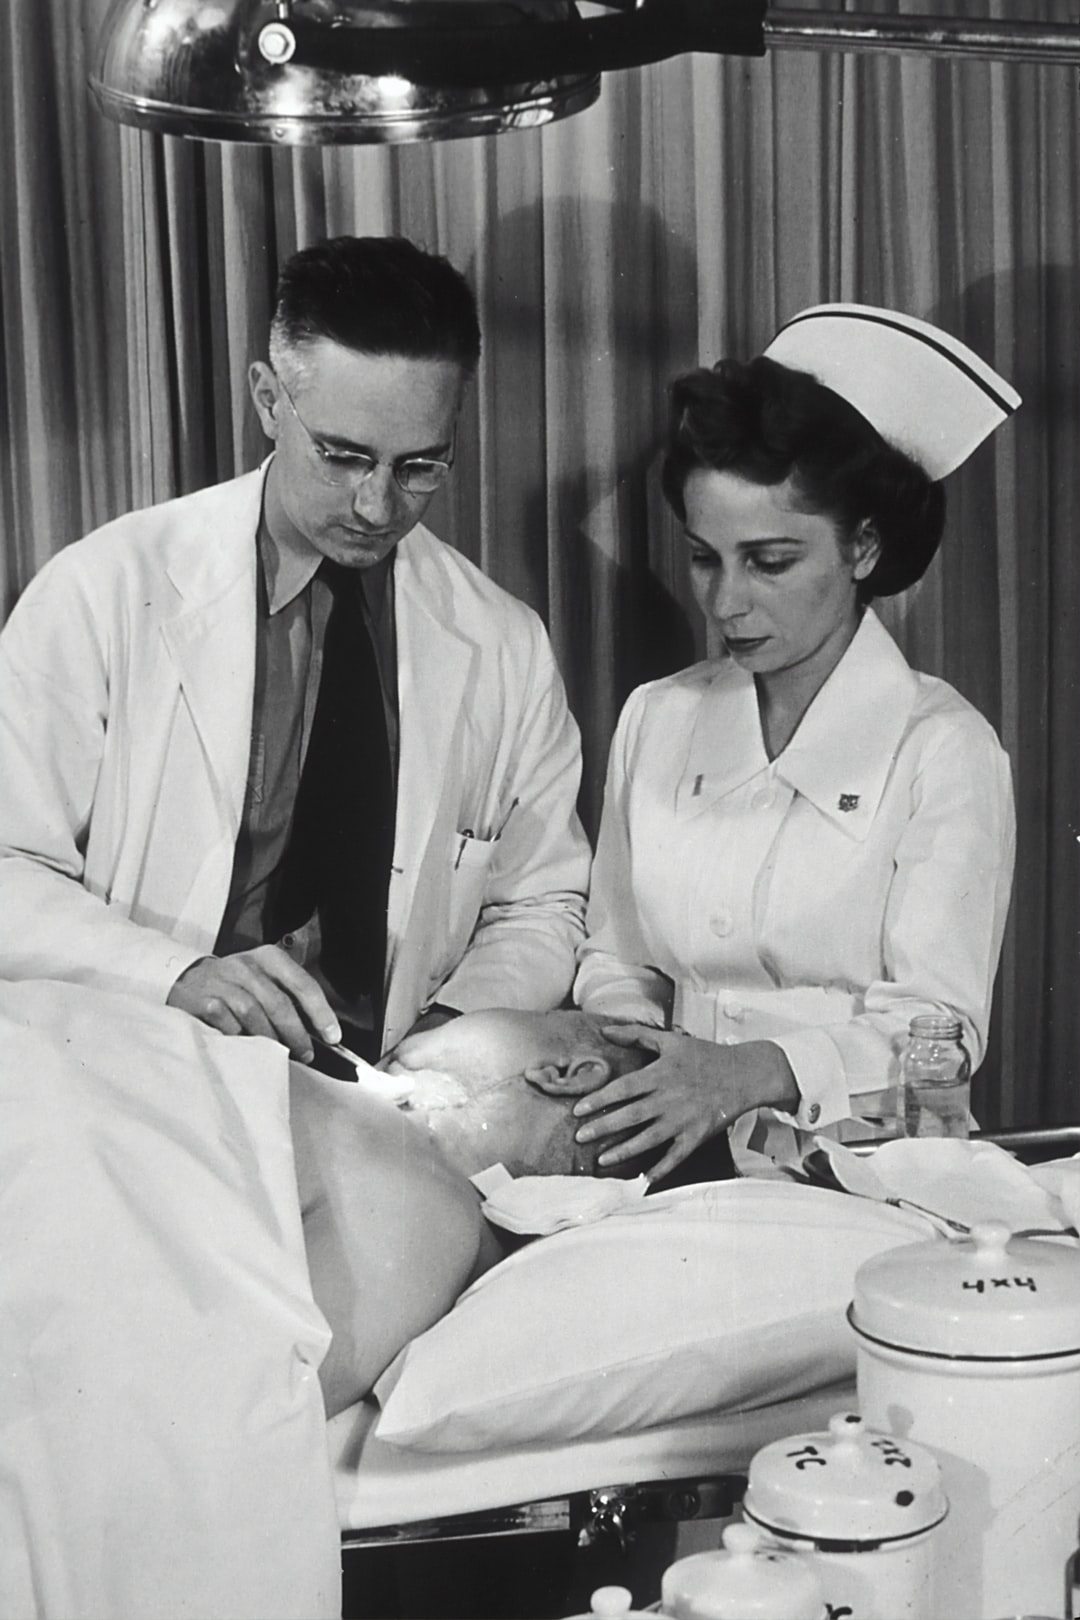 A Caucasian physician is changing the dressing on a patient's neck, while a Caucasian nurse holds the patient's head. Photo was taken at Public Health Service Tumor Clinic, Marine Hospital, Baltimore. 1950